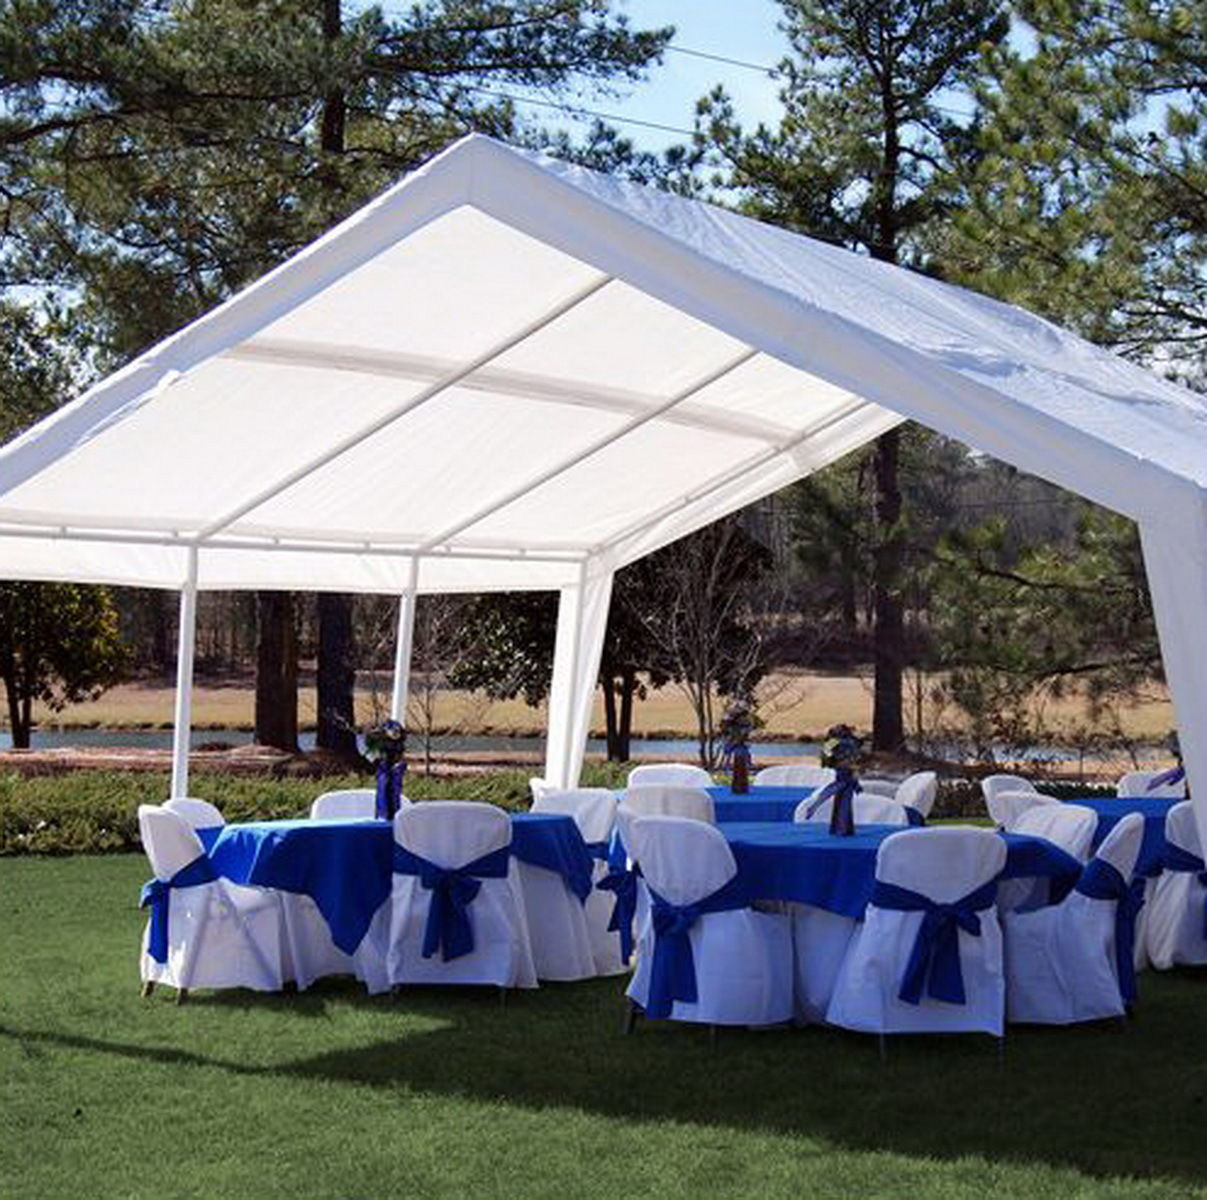 20 X 20 COMMERCIAL TENT & Bounces By Barnes :: Your One Stop Shop For All Of Your Events and ...